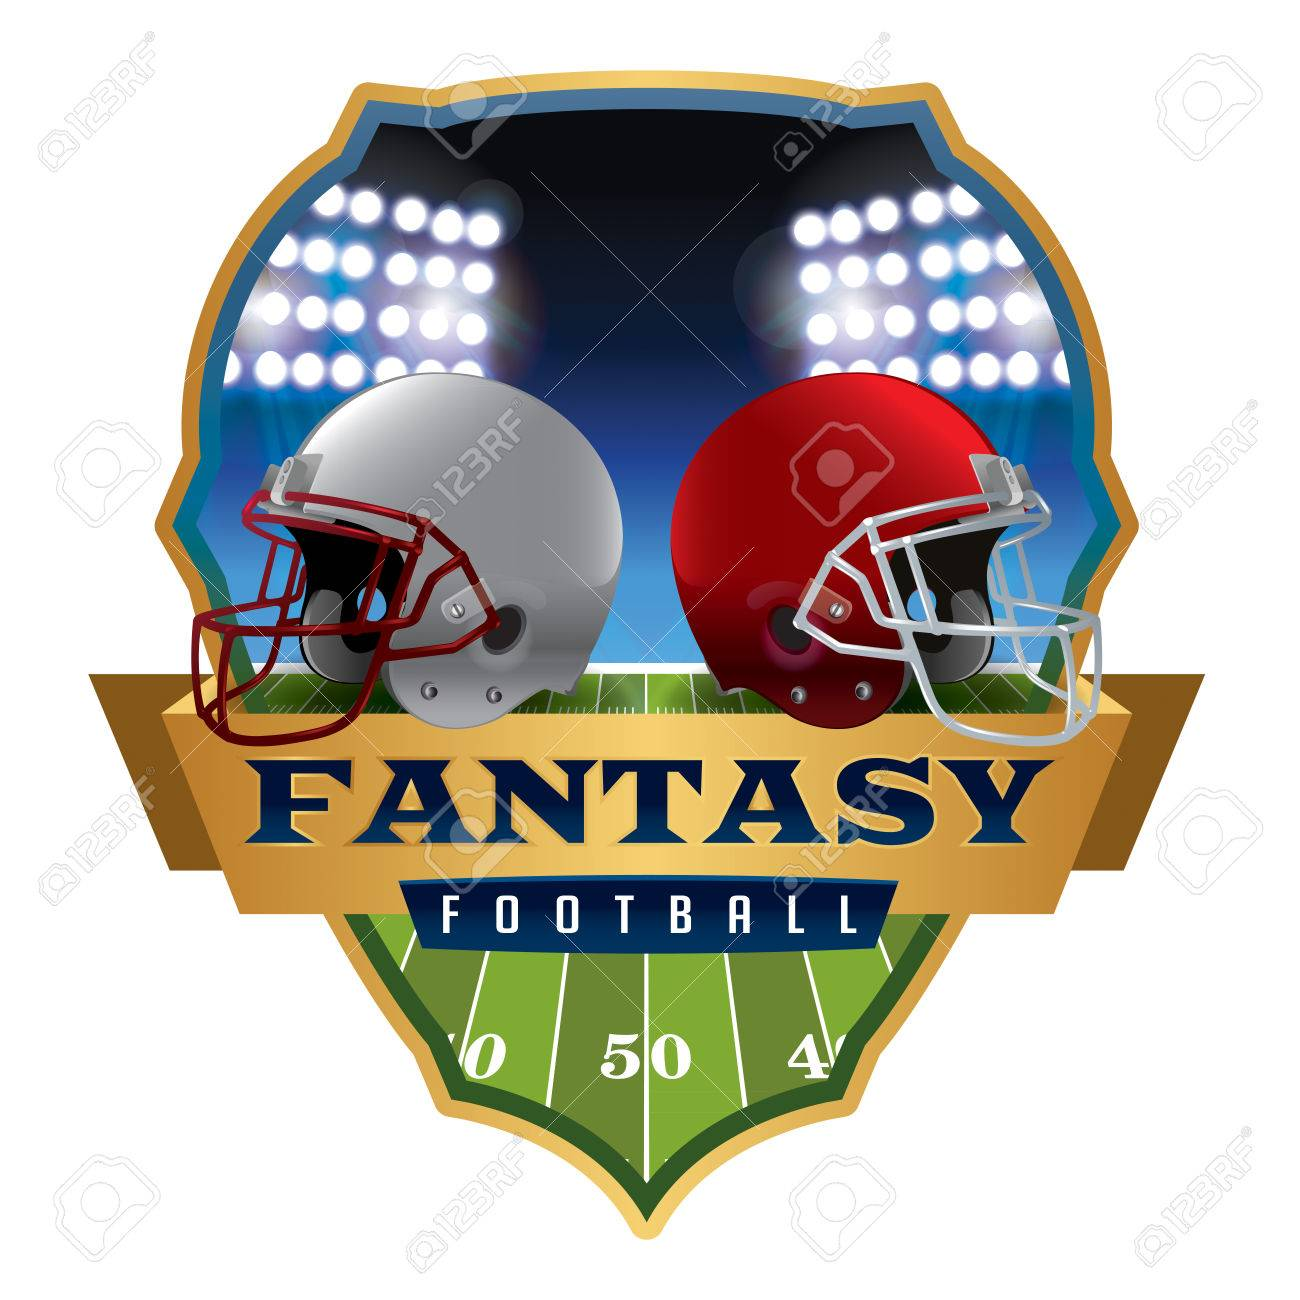 An illustration of an American fantasy football helmets and badge. - 43060174